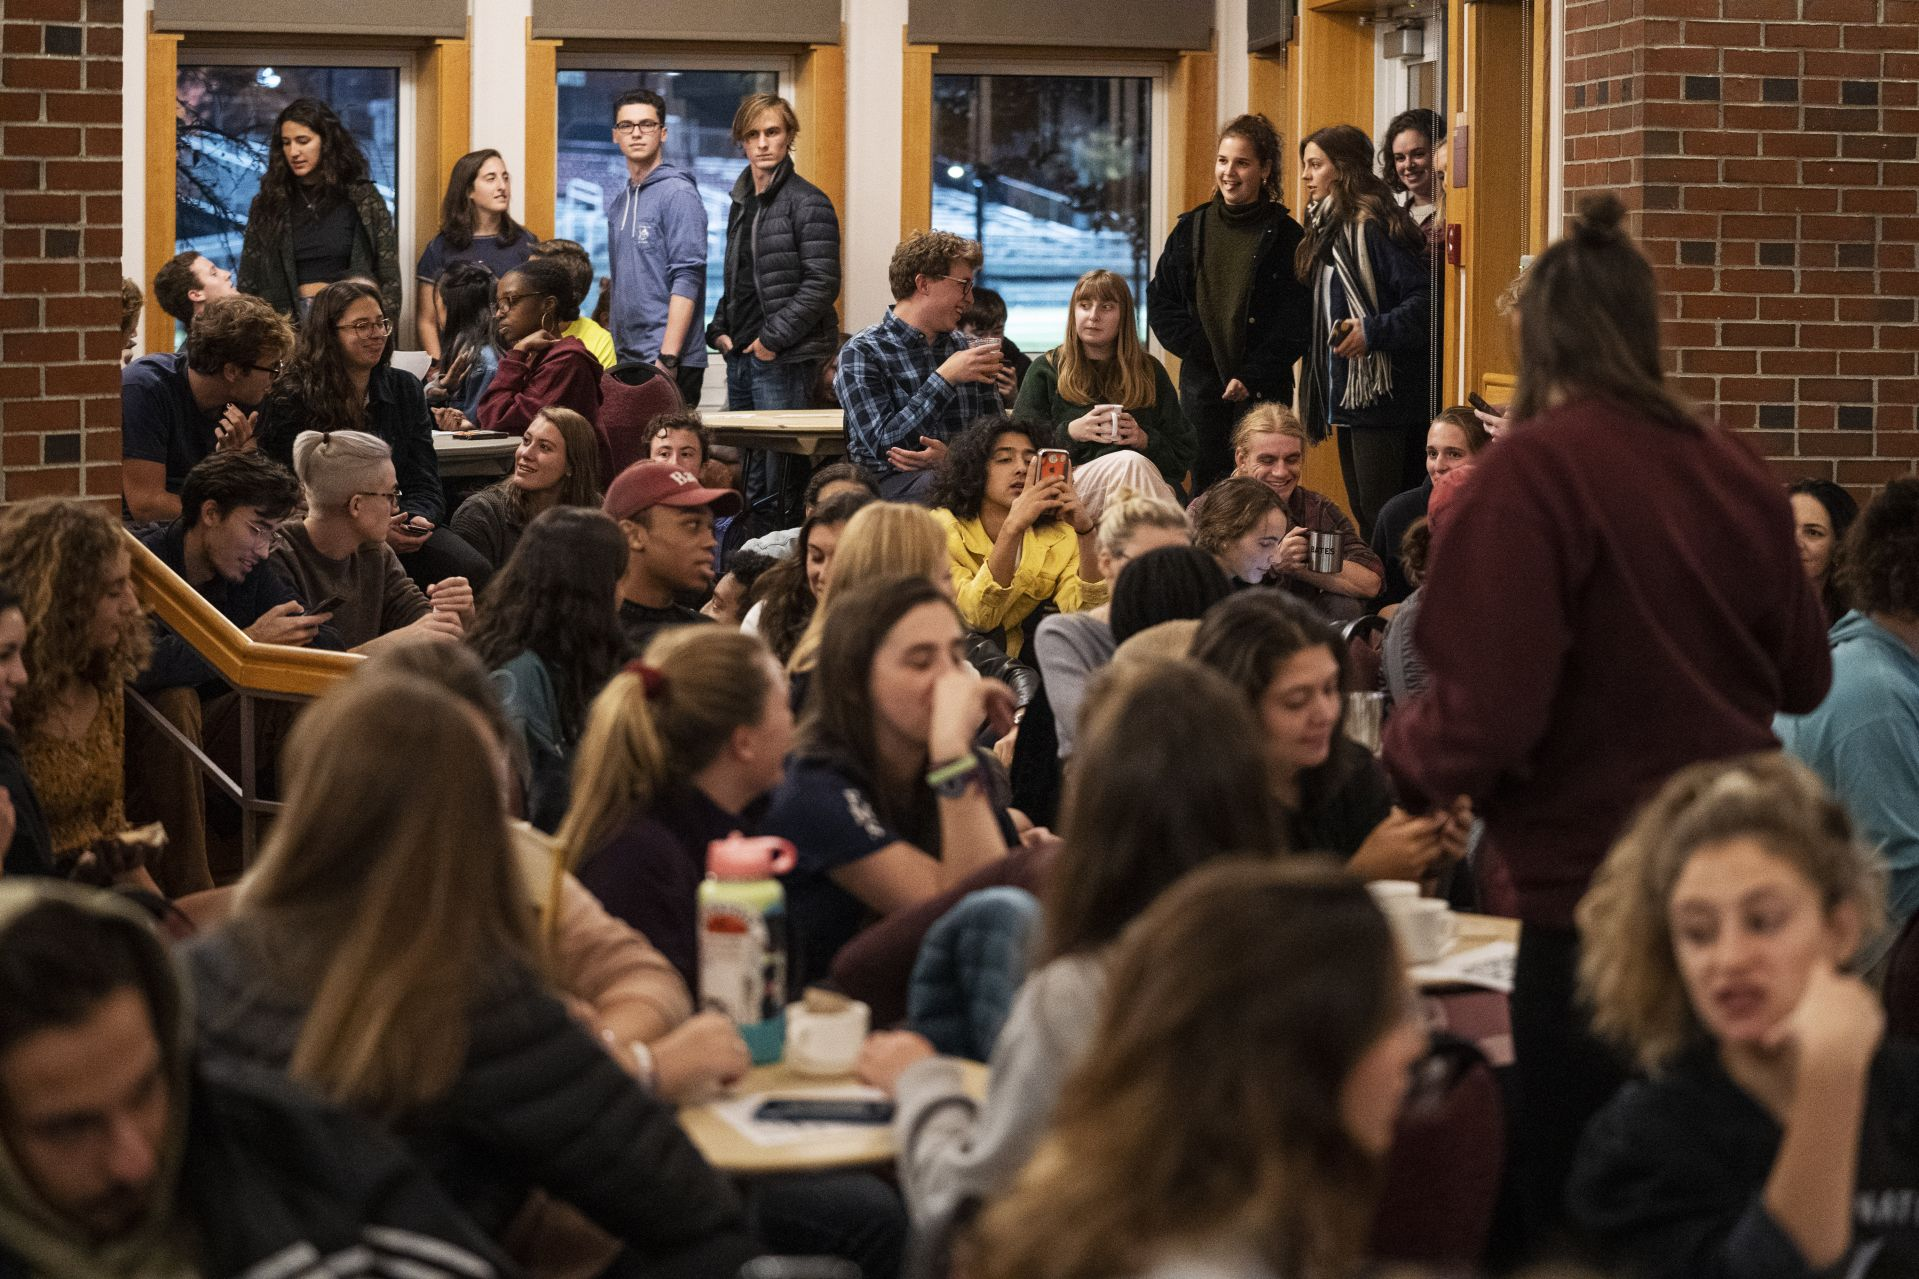 It's standing room only for the Village Club Series' Student Showcase event on Oct. 10. (Theophil Syslo/Bates College)